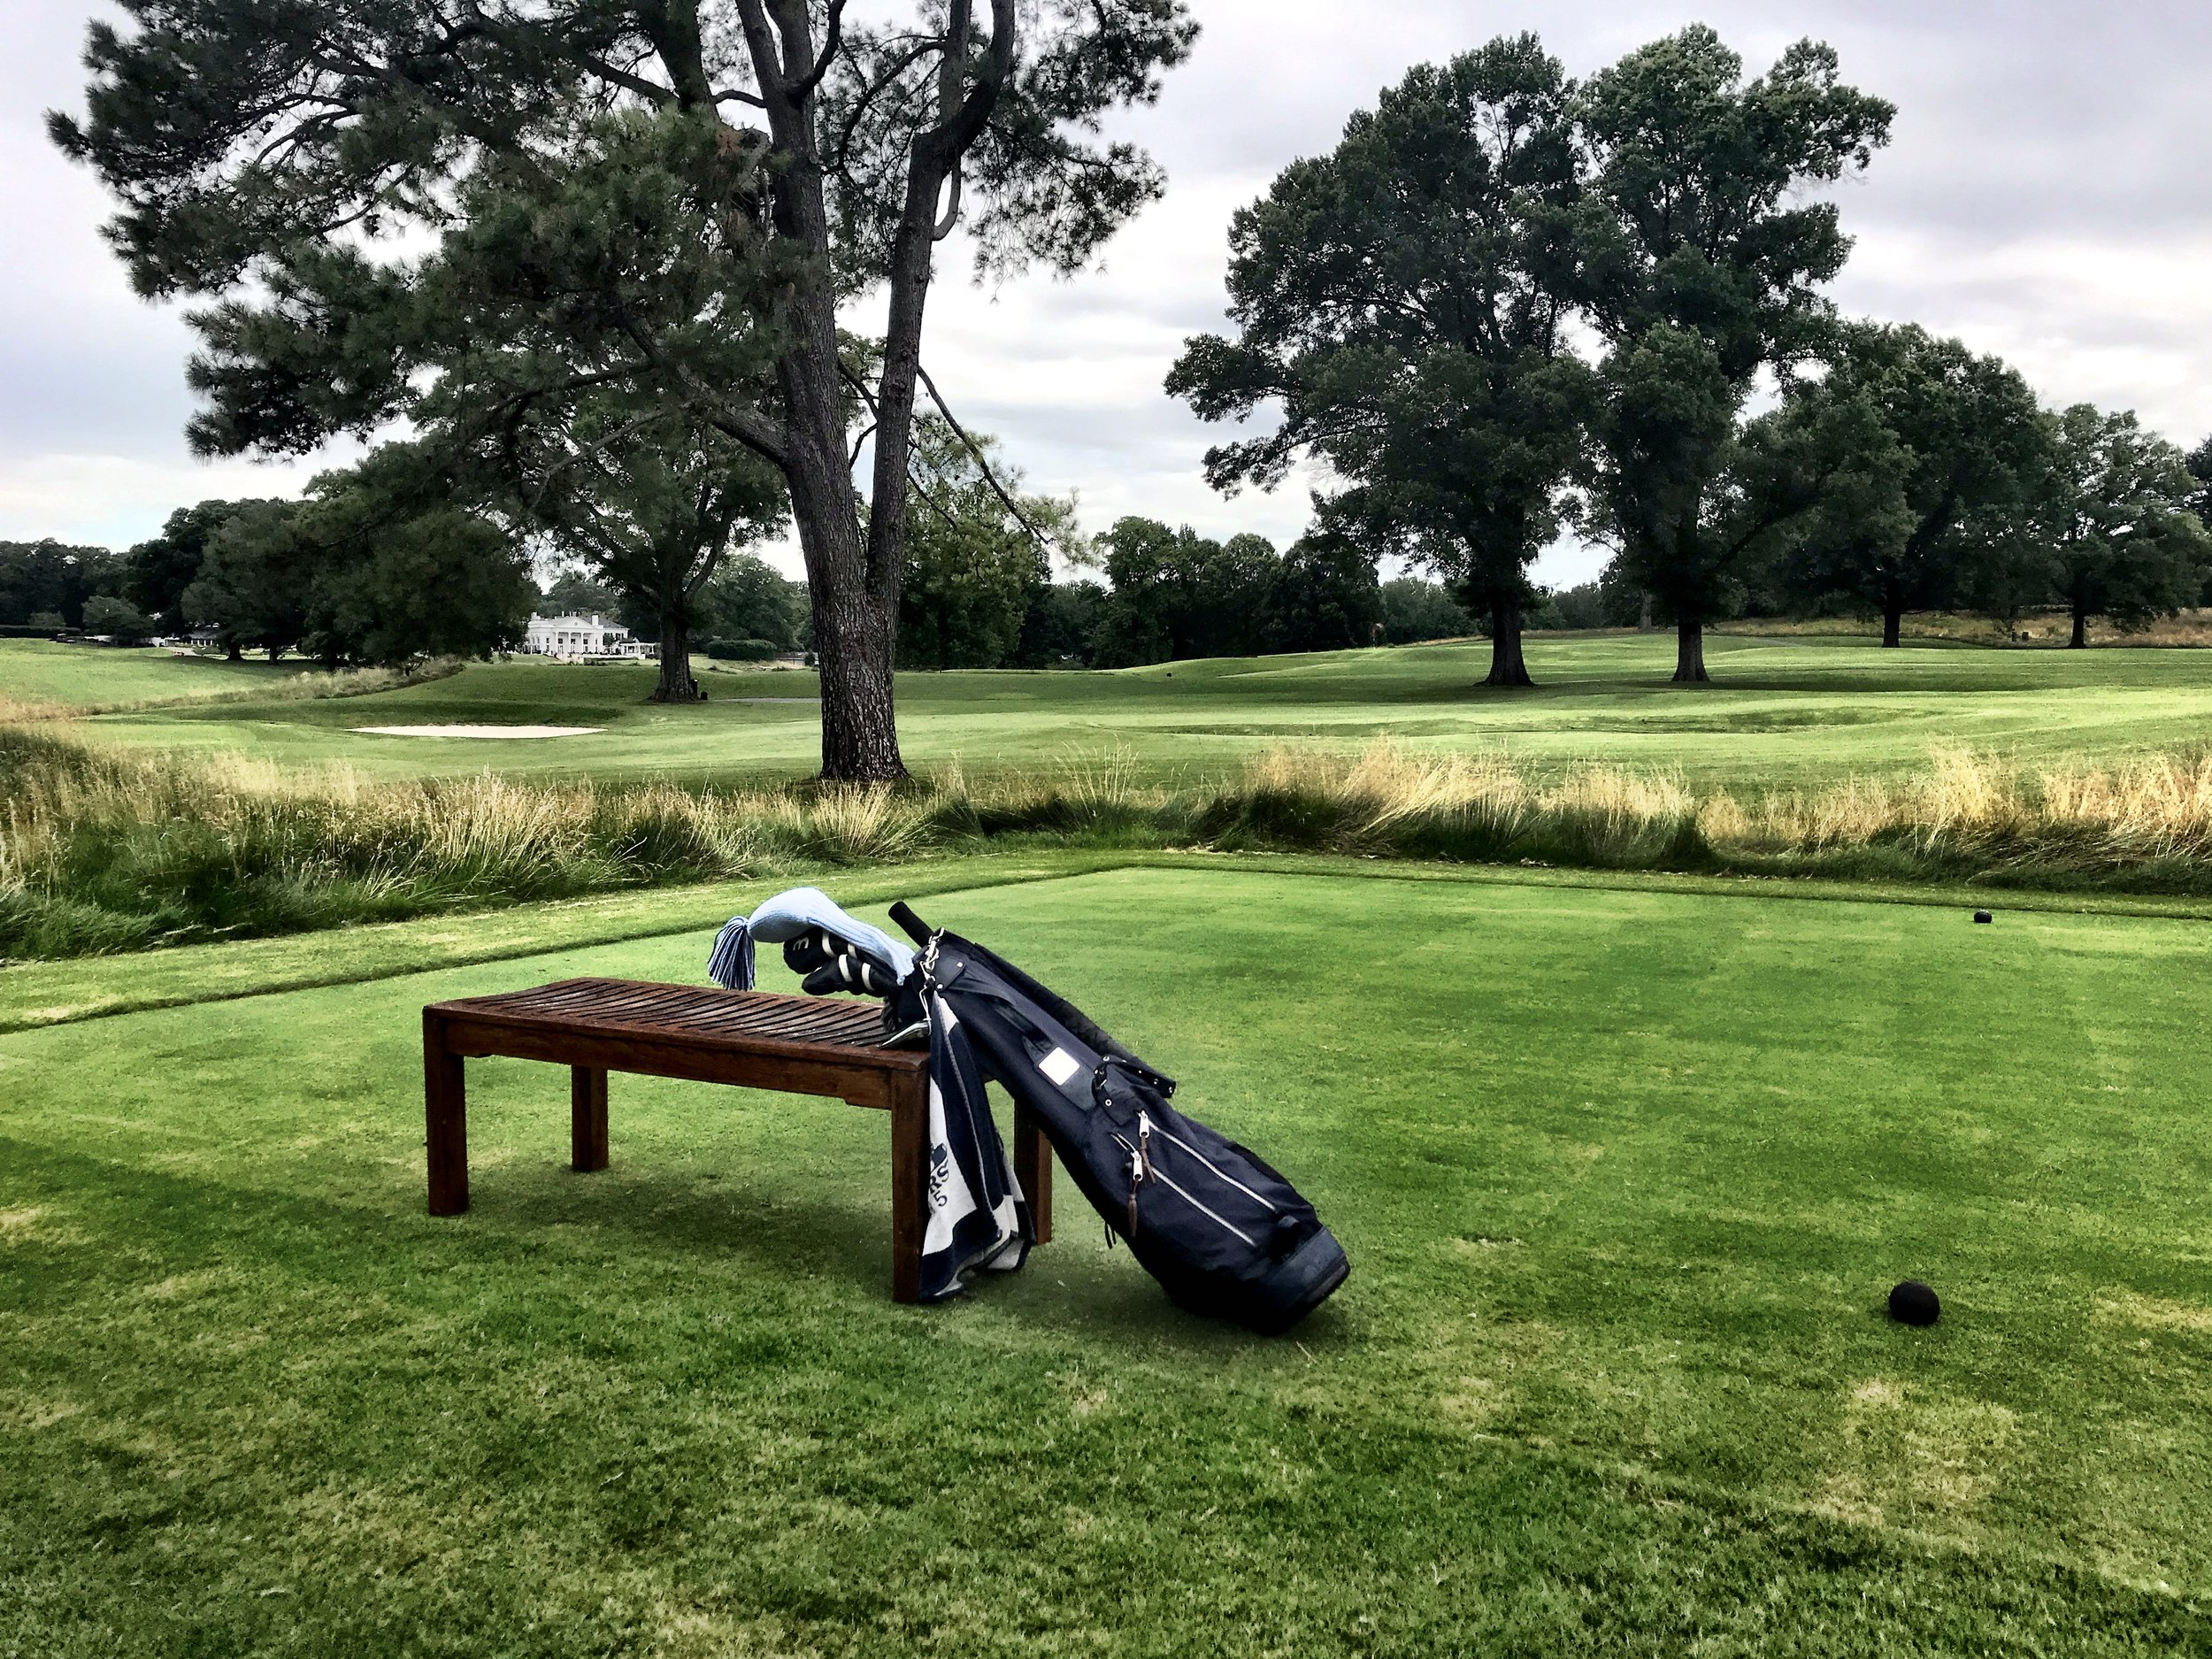 The clean look: Just a handsome wooden bench on the tee of each hole, letting the wispy accent grasses, stately trees and rolling ground dominate the vision.